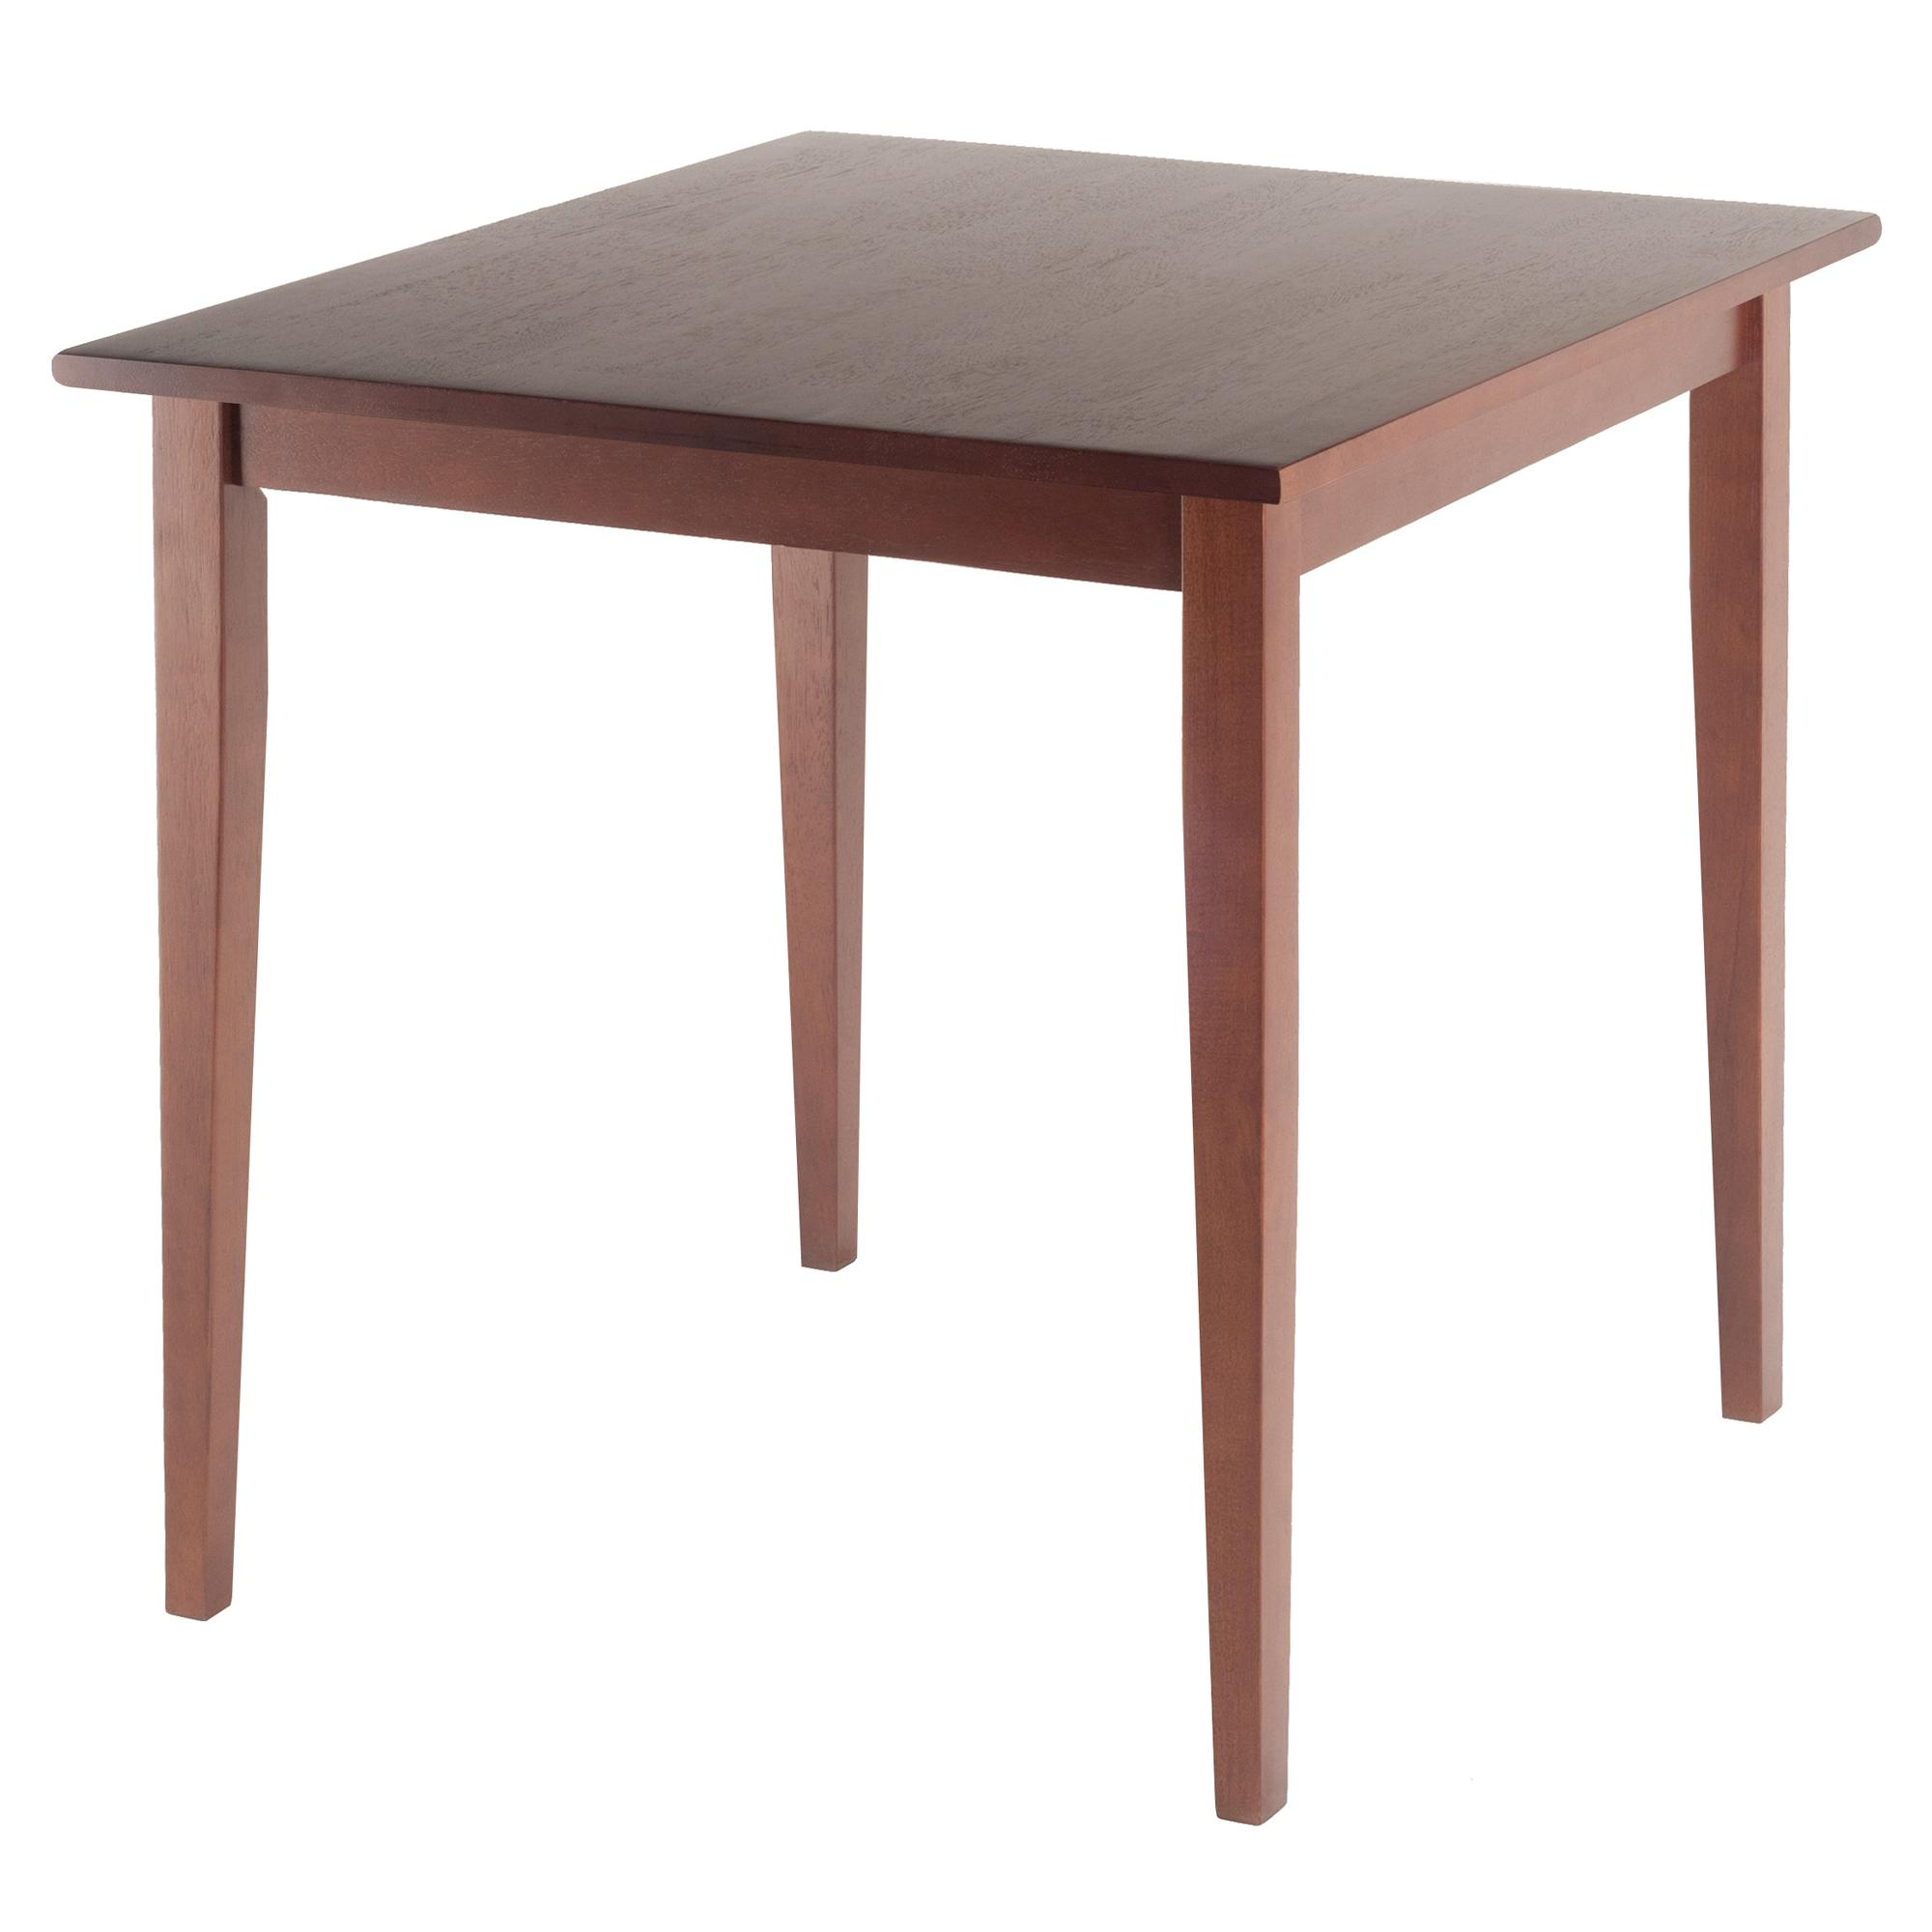 Winsome wood groveland square dining table in for Wooden small dining table